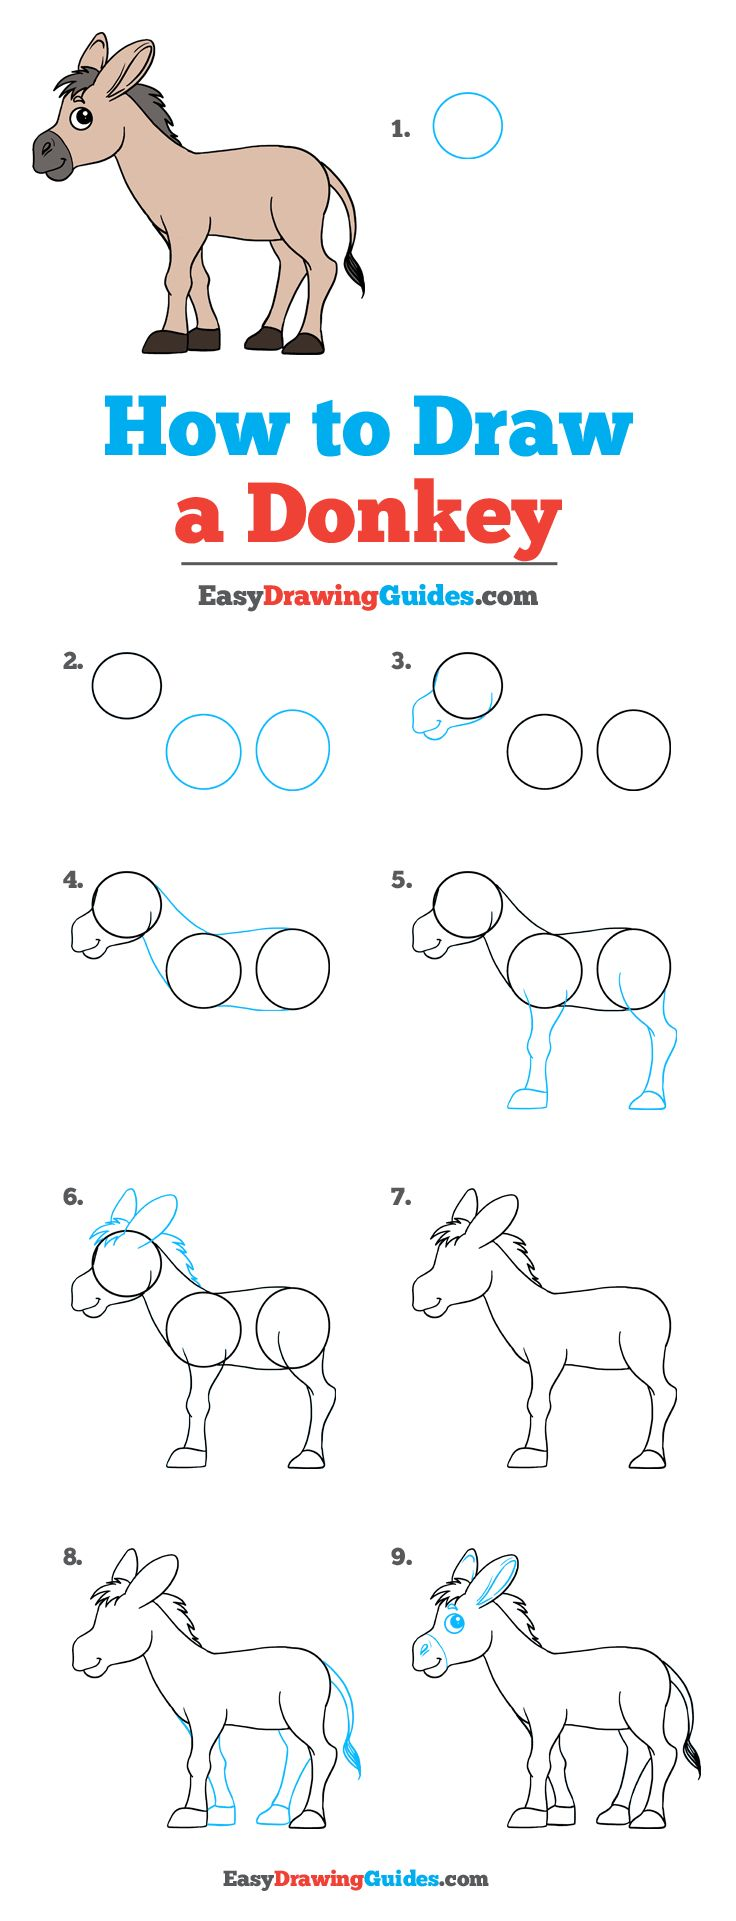 draw easy donkey drawing step drawings 3d easydrawingguides lessons tutorial doodle beginners animals read looking animal tutorials